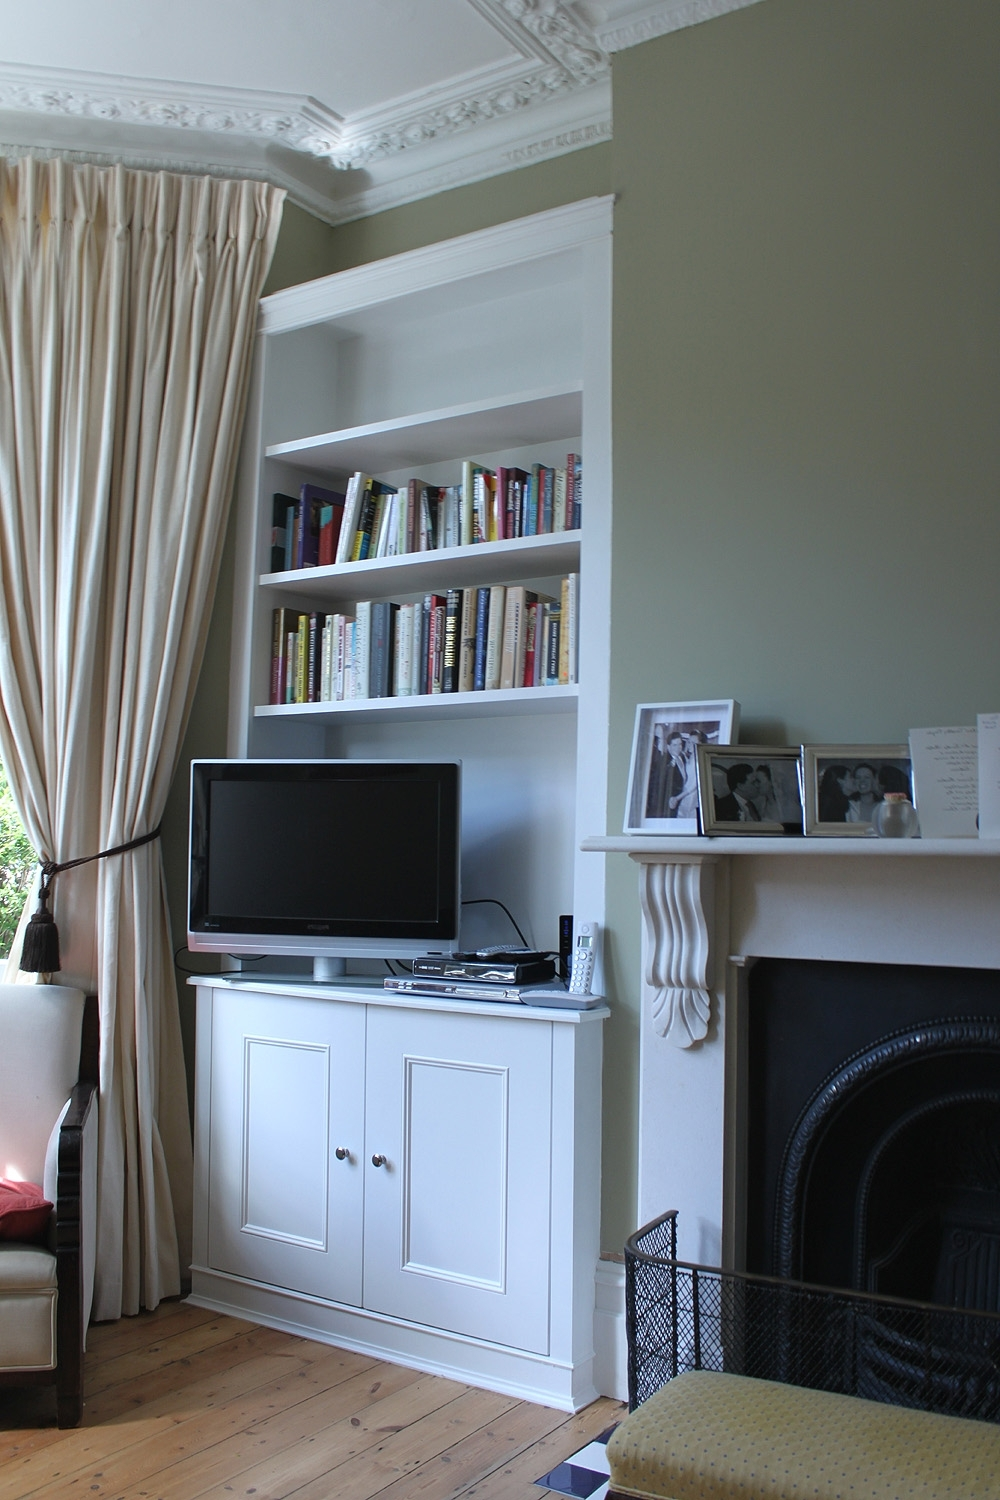 Fitted Wardrobes, Bookcases, Shelving, Floating Shelves, London Throughout Popular Handmade Cupboards (View 4 of 15)